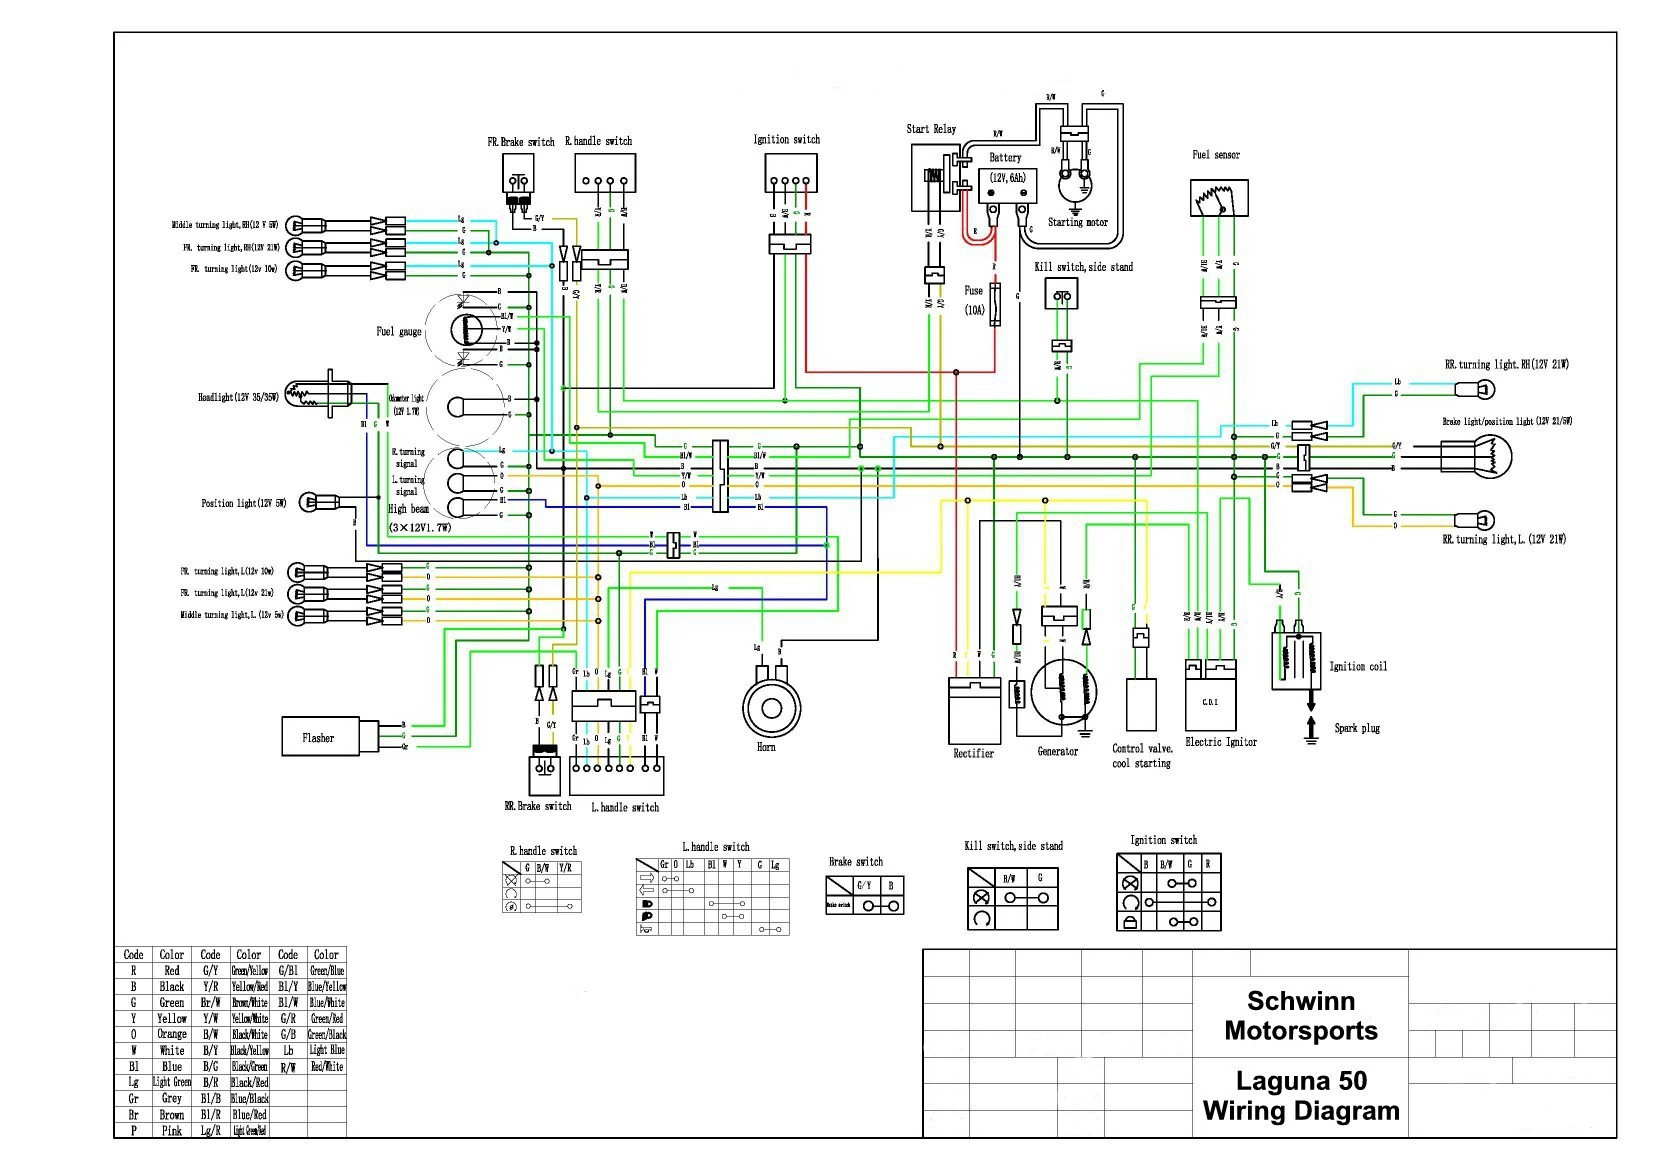 Howhit 150cc Engine Diagram Wiring Diagram for 3 Way Switches Multiple Lights Scooter with Basic Of Howhit 150cc Engine Diagram 50 Best Image Gy6 Go Kart Wiring Diagram Diagram Inspiration